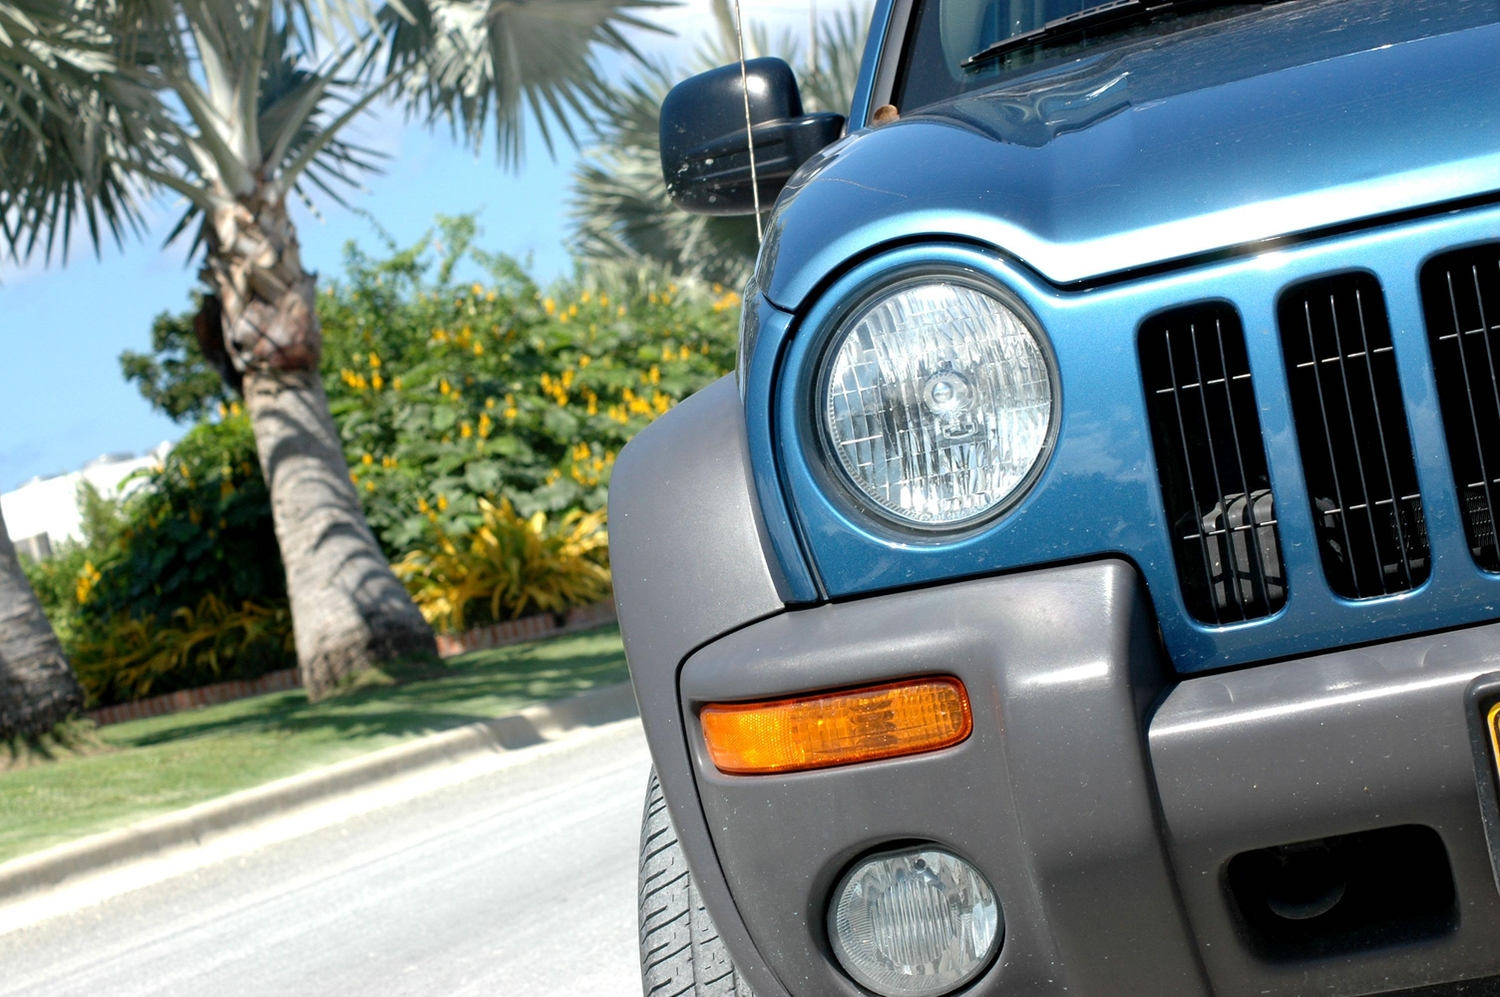 Blue jeep liberty driving